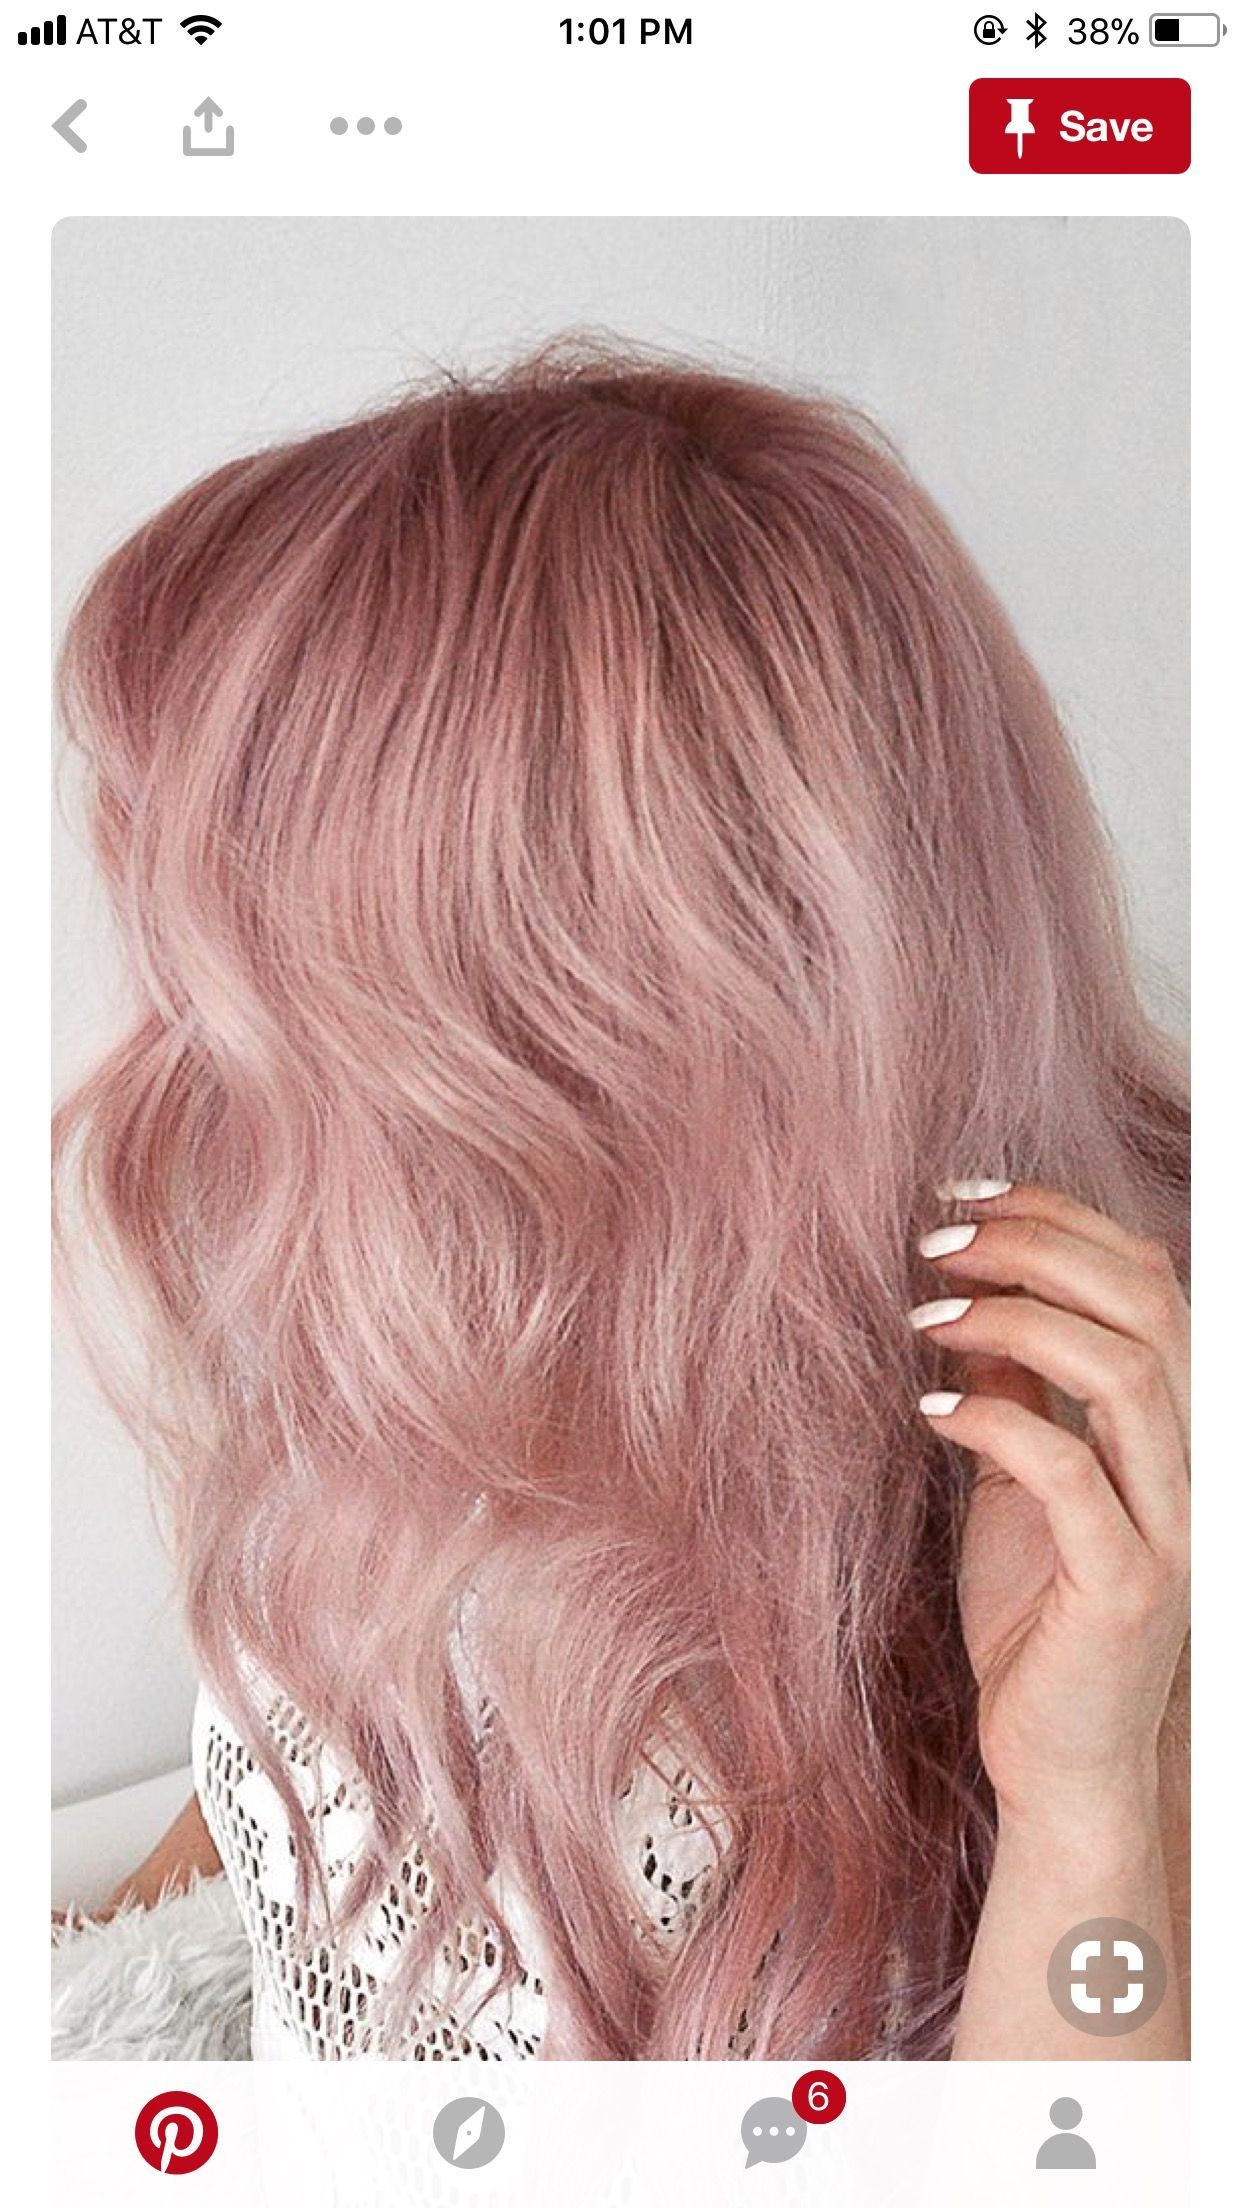 Pin By Julia Muller On Hair Purple Shampoo Hair Color Remover Sulfate Free Purple Shampoo